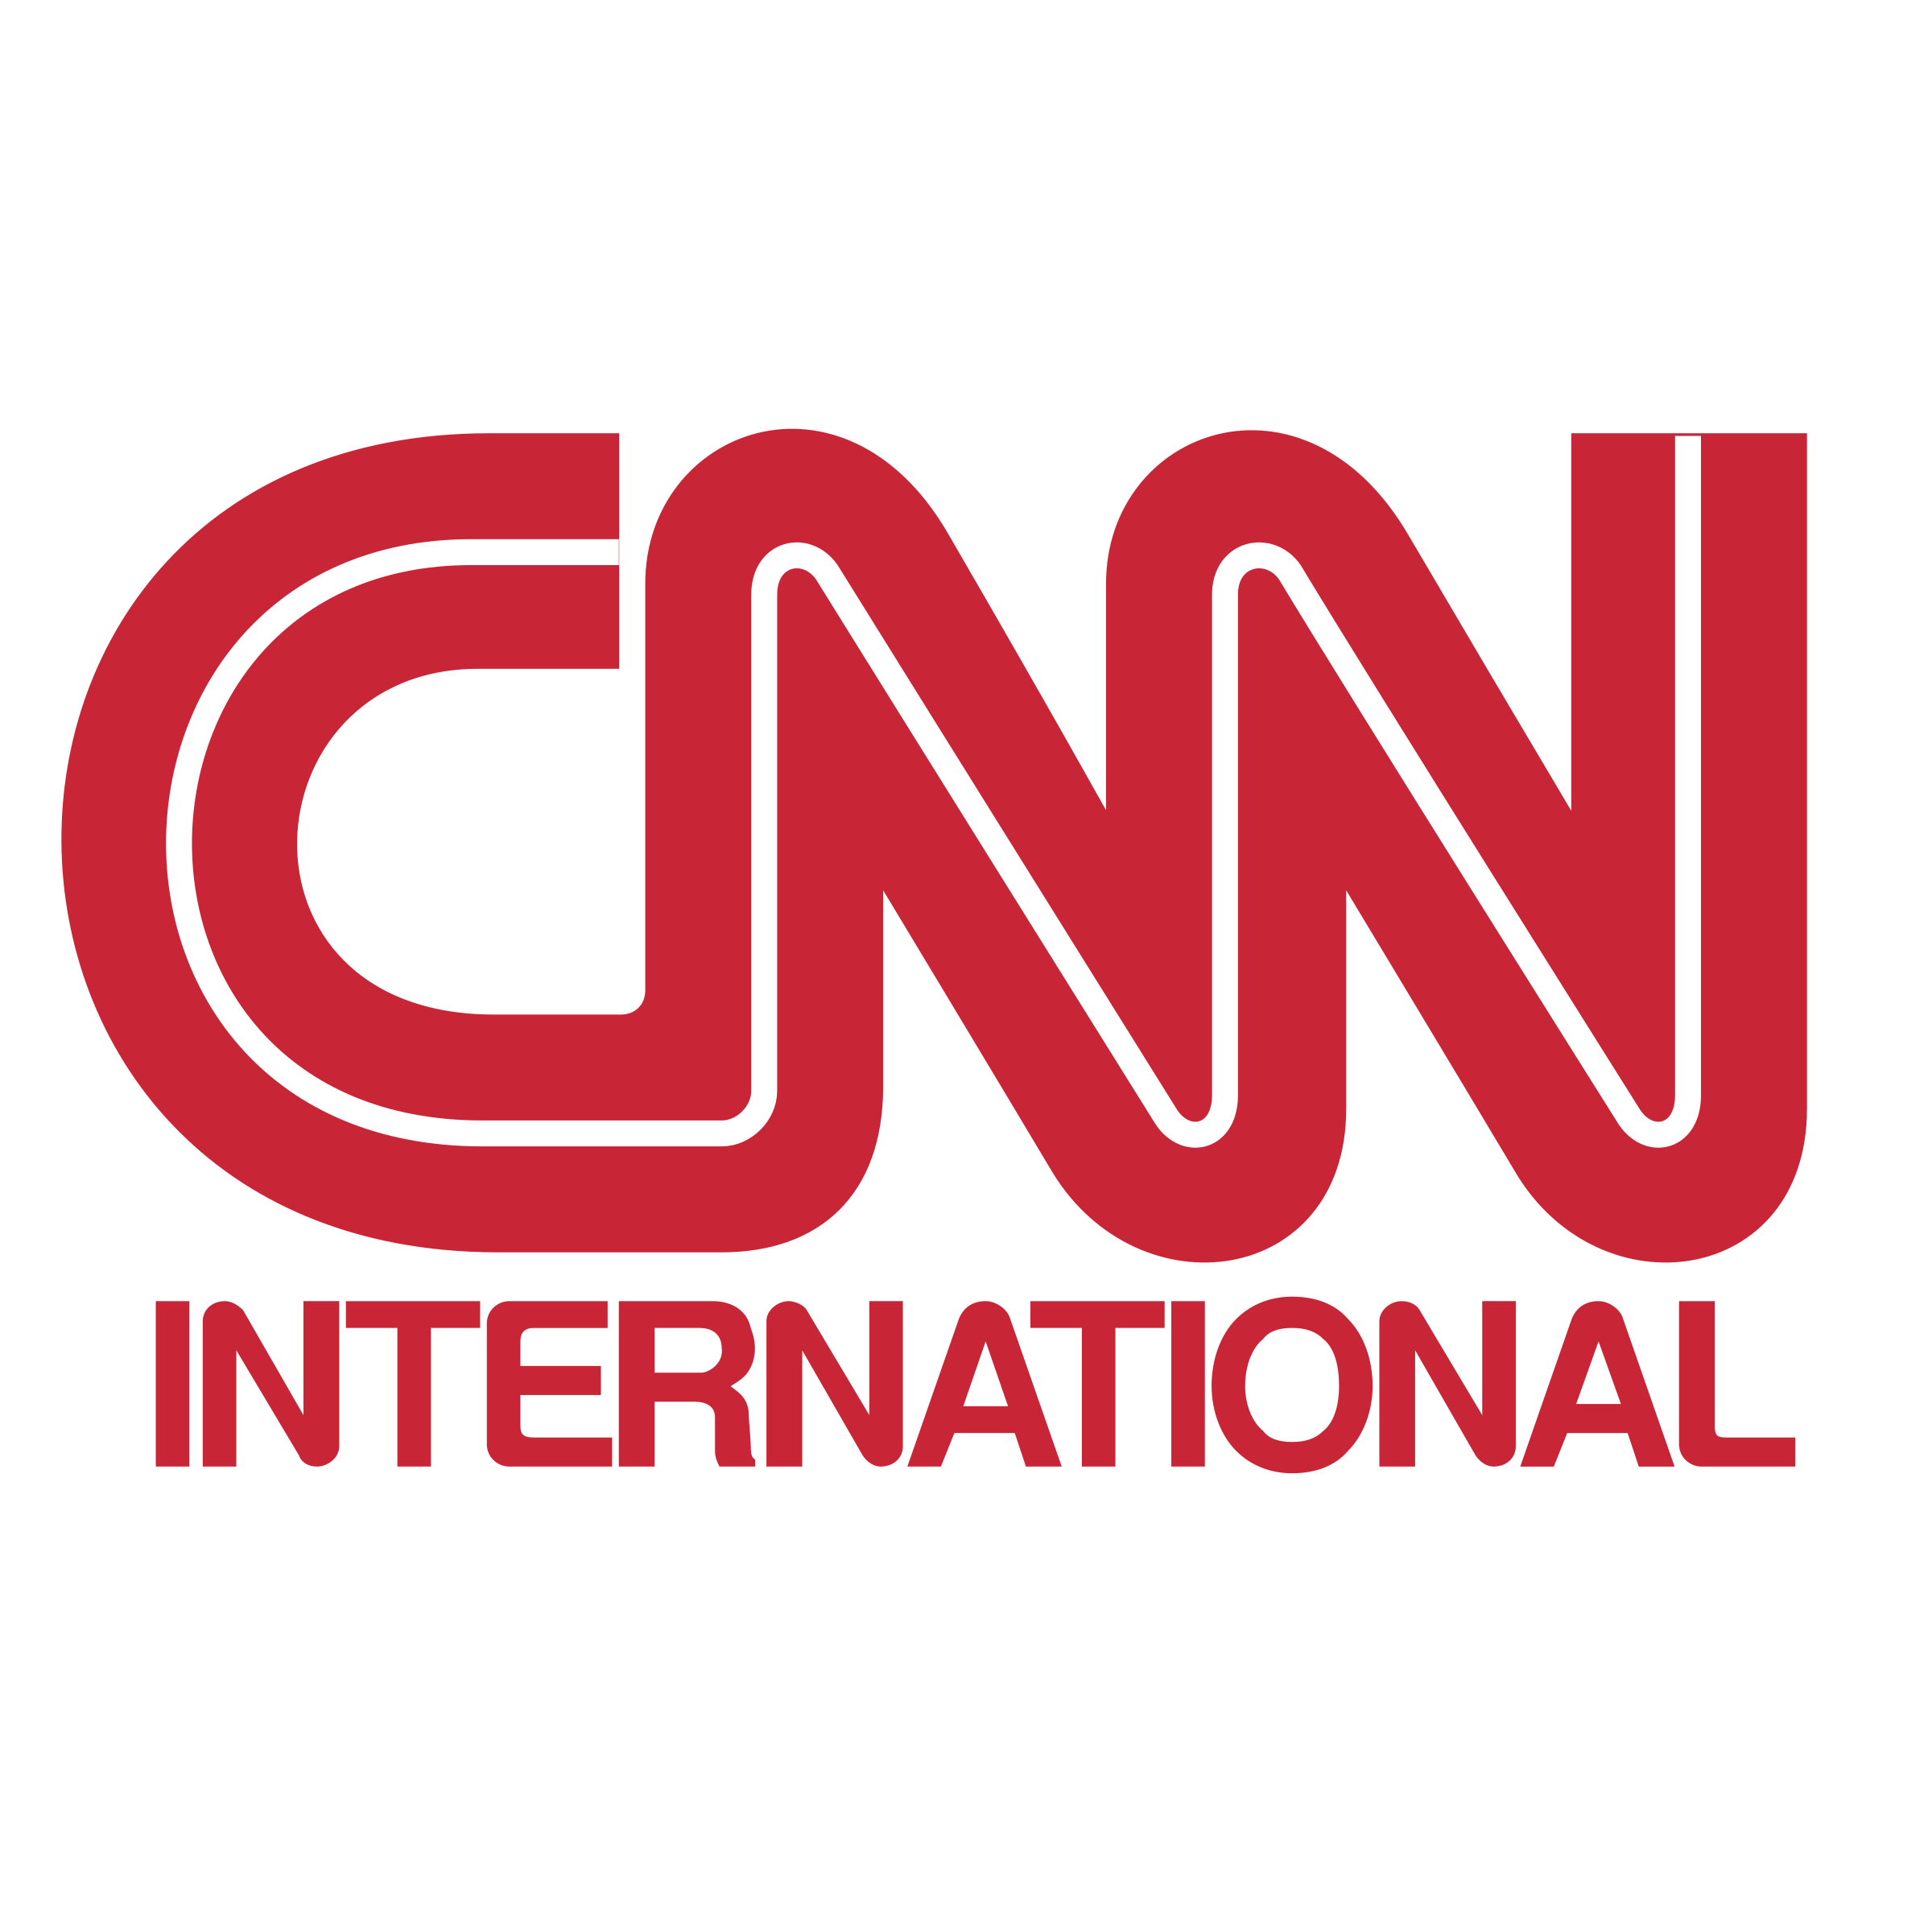 cnn international logo png transparent amp svg vector